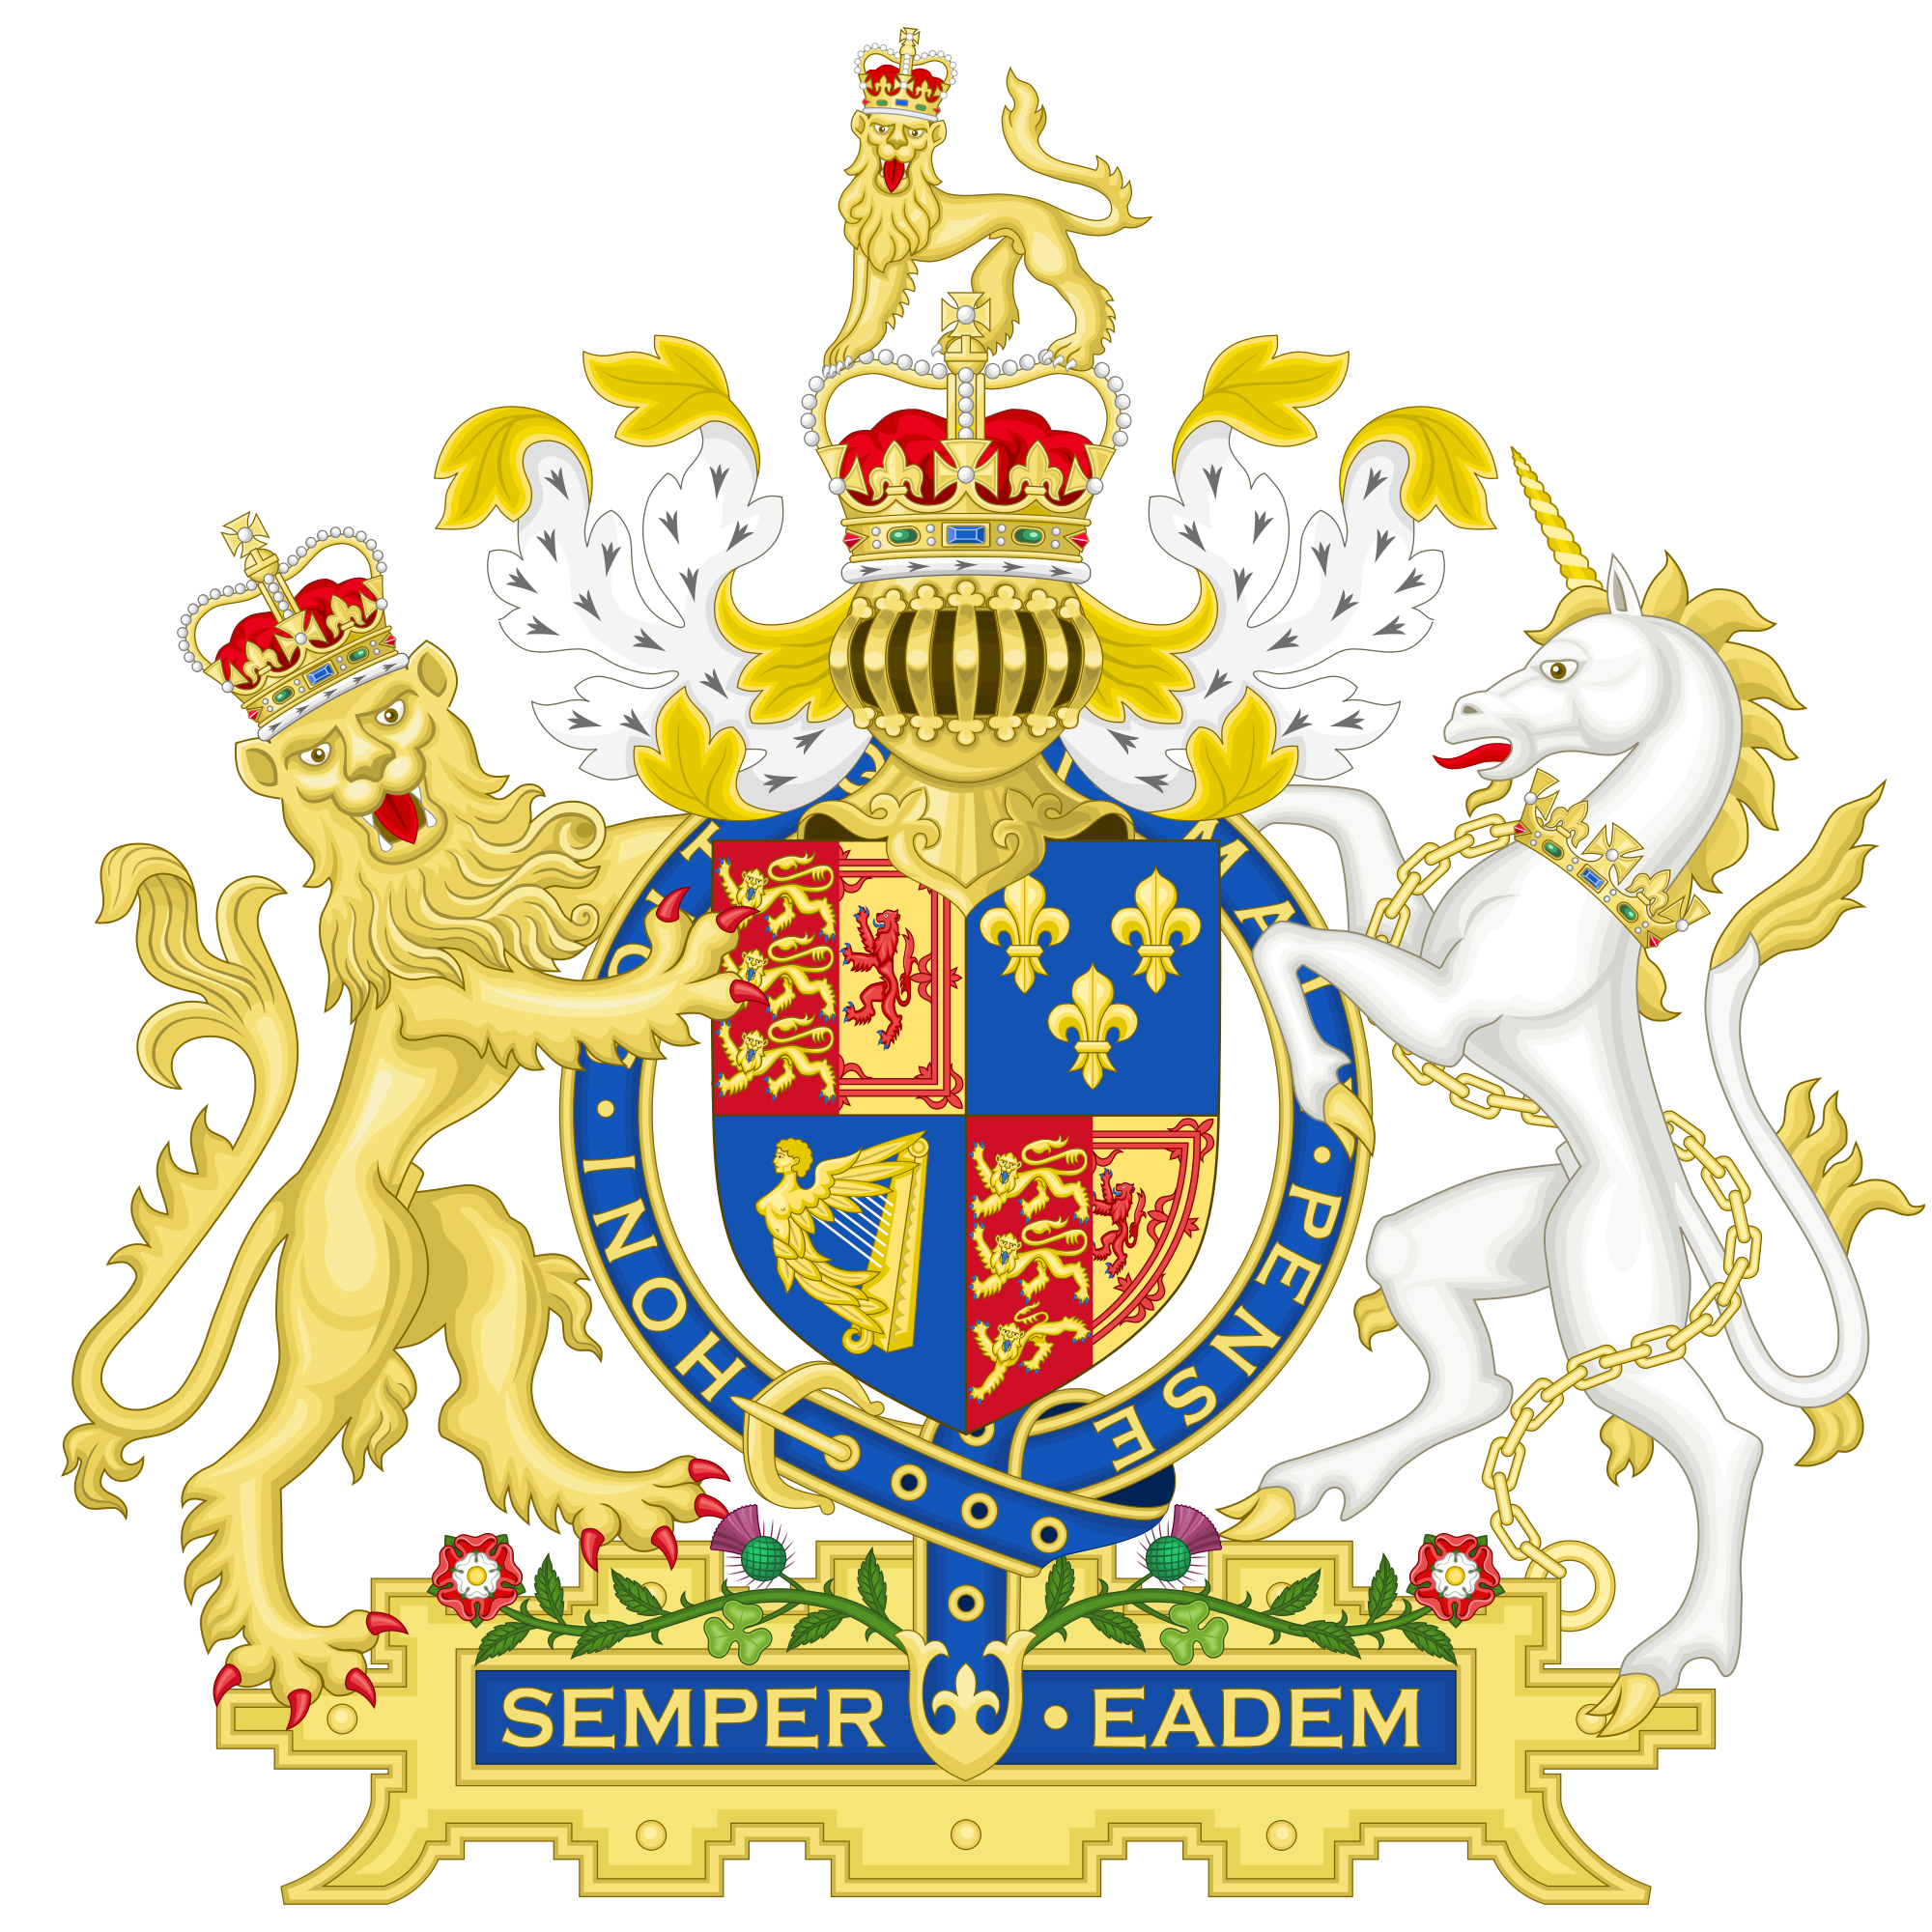 The crest of the House of Stuart